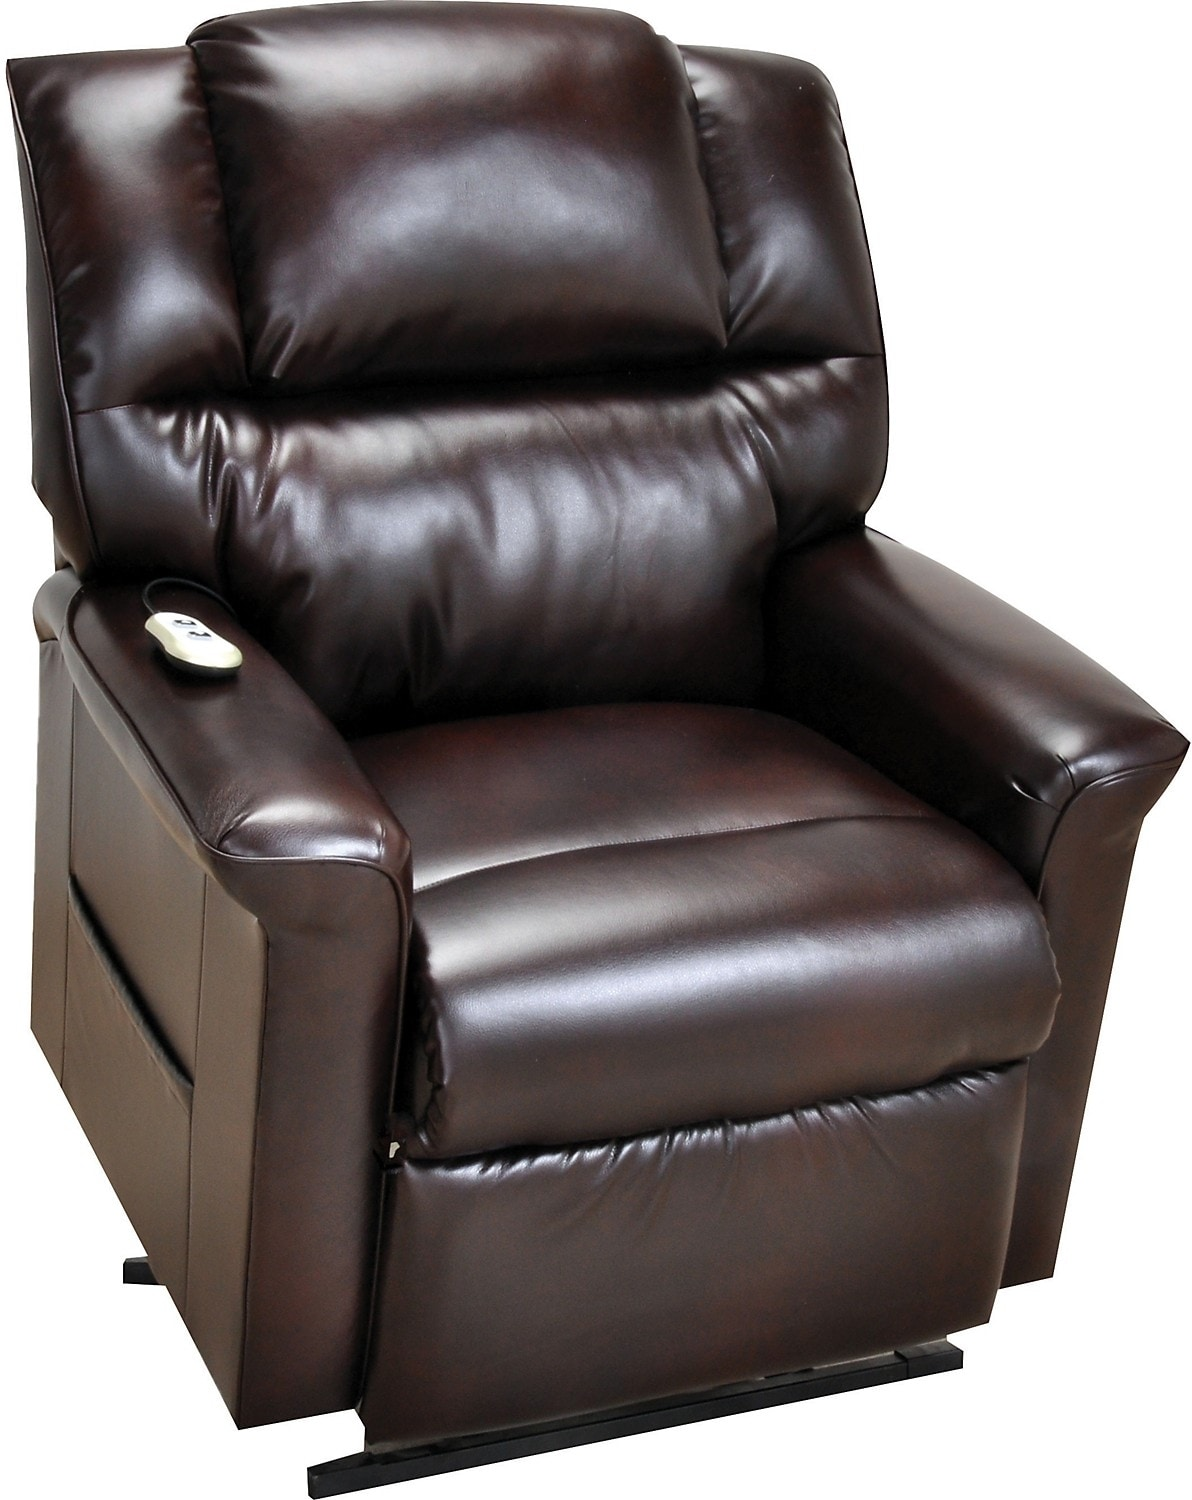 room furniture bonded leather 3 position power lift recliner brown